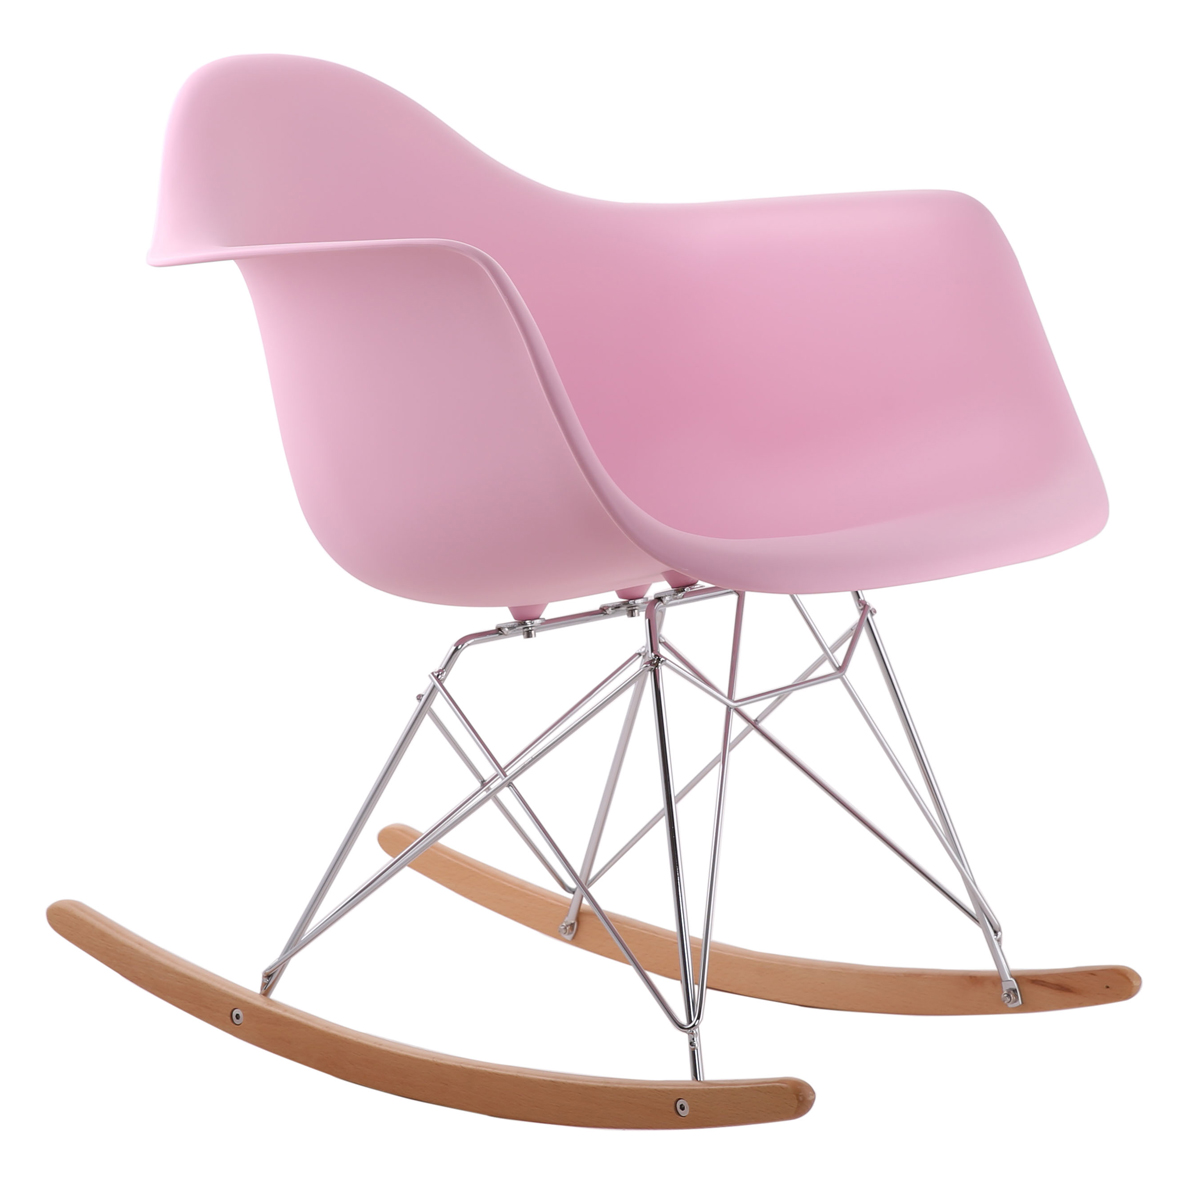 Eames Chair India 15 Best Arm Chair Designs And Ideas To Buy In India